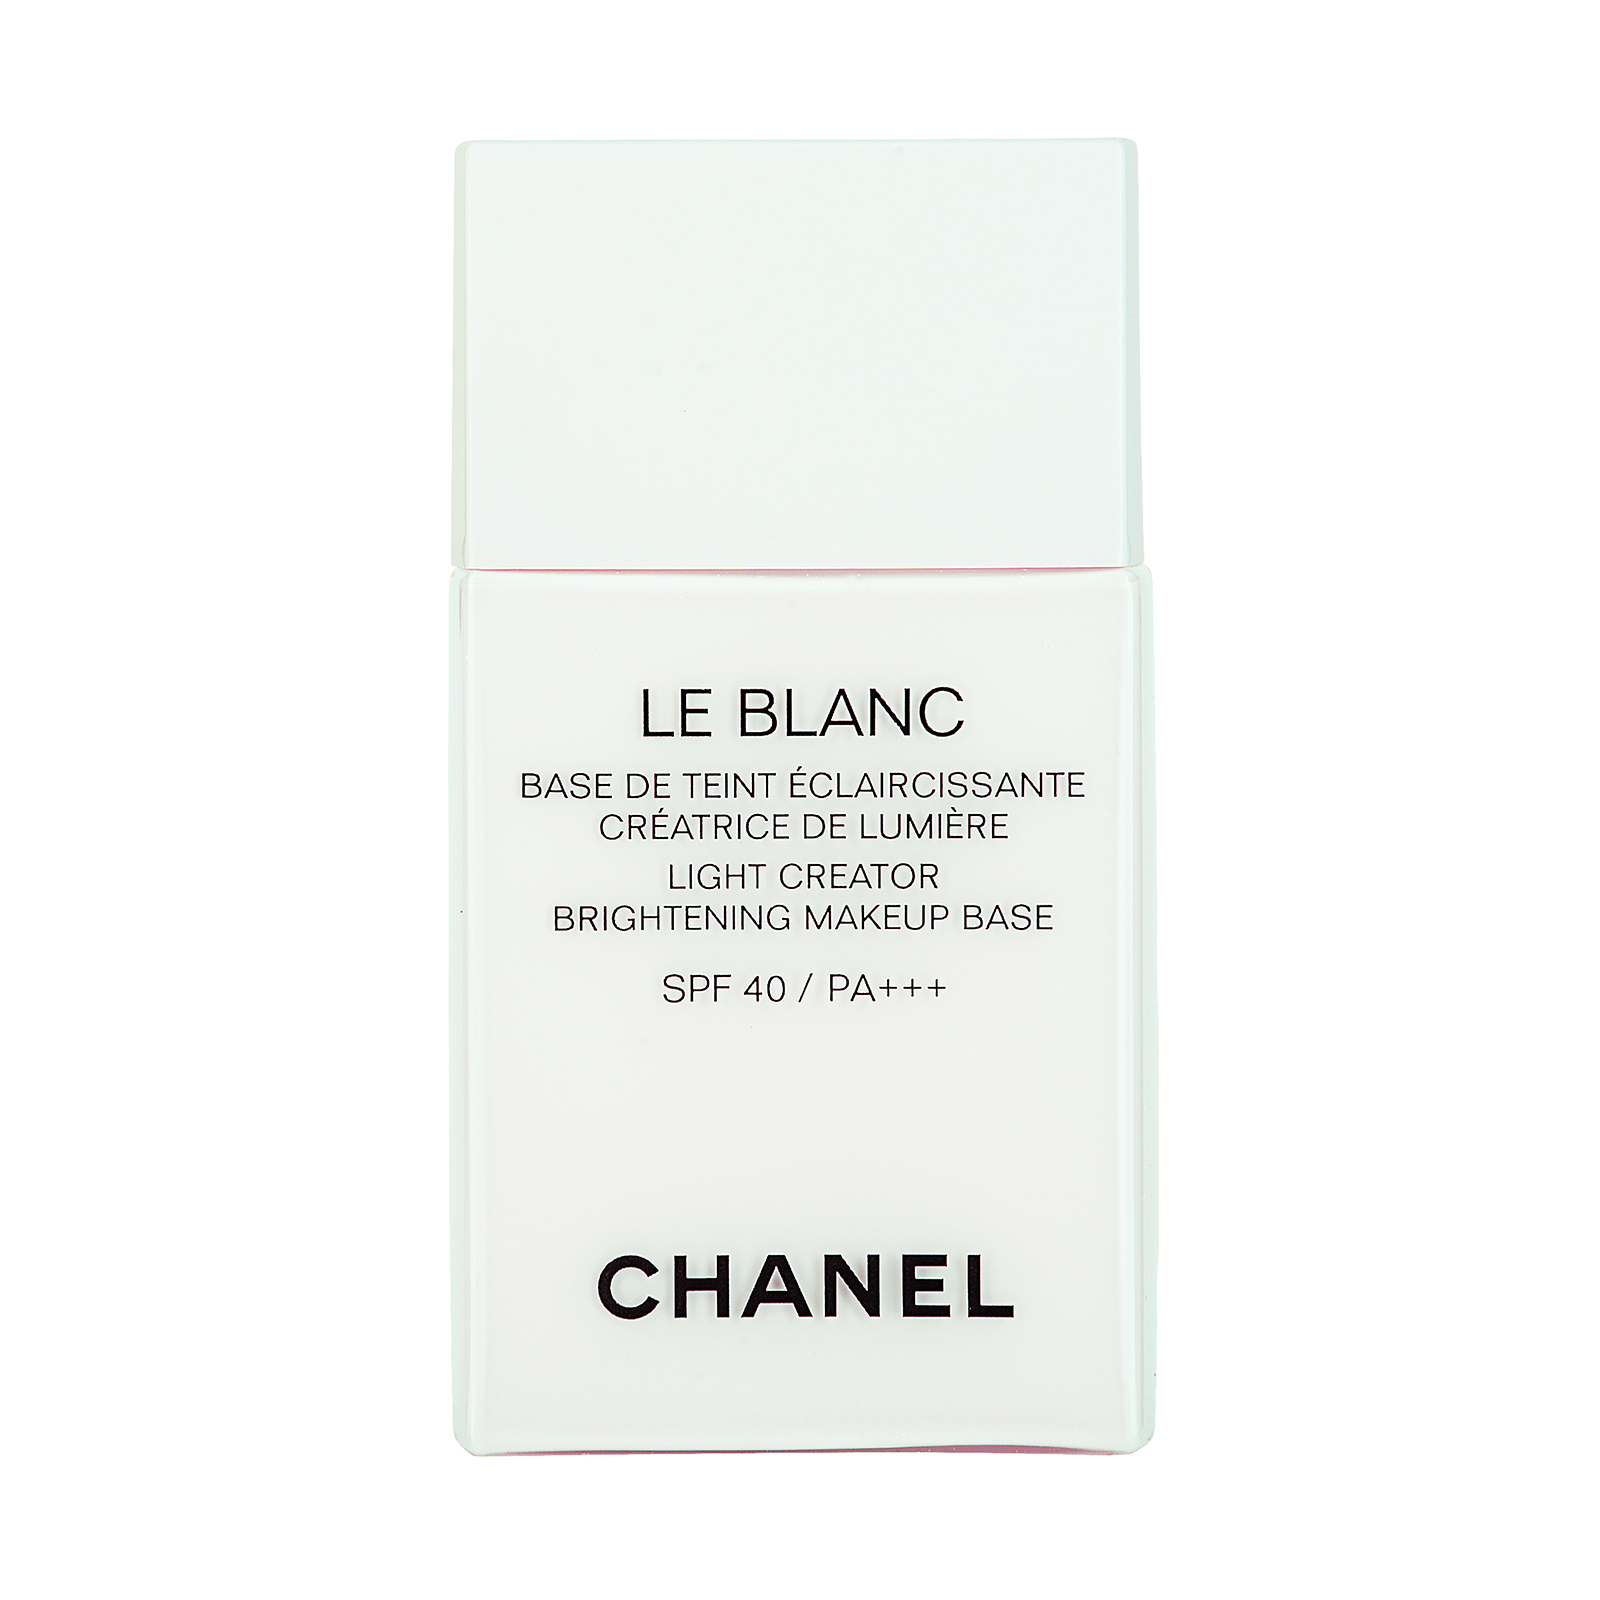 Chanel Le Blanc Light Creator Brightening Makeup Base SPF 40/ PA+++ 30 Lys, 1oz, 30ml